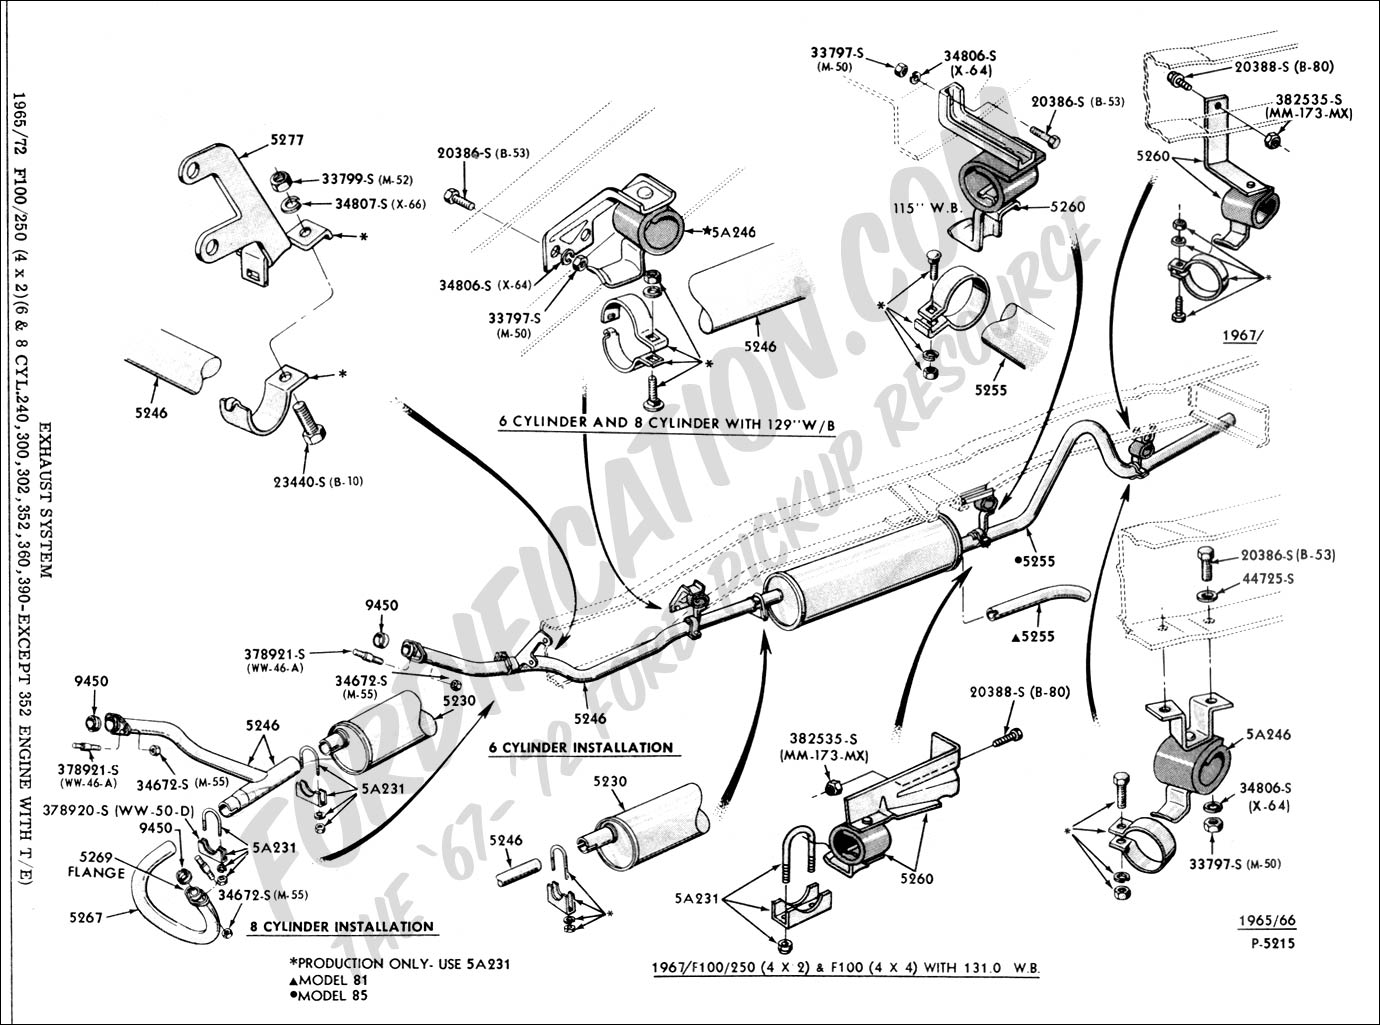 Toyota 4 6 Liter Engine Diagram together with 1993 Ford F 150 Serpentine Belt Diagram also 350 Lt1 Engine Diagram moreover 98 Ford F 150 4 6l Engine Diagram furthermore 1990 Ford F150 Vacuum Diagram. on 1992 ford f 150 vacuum hose diagram